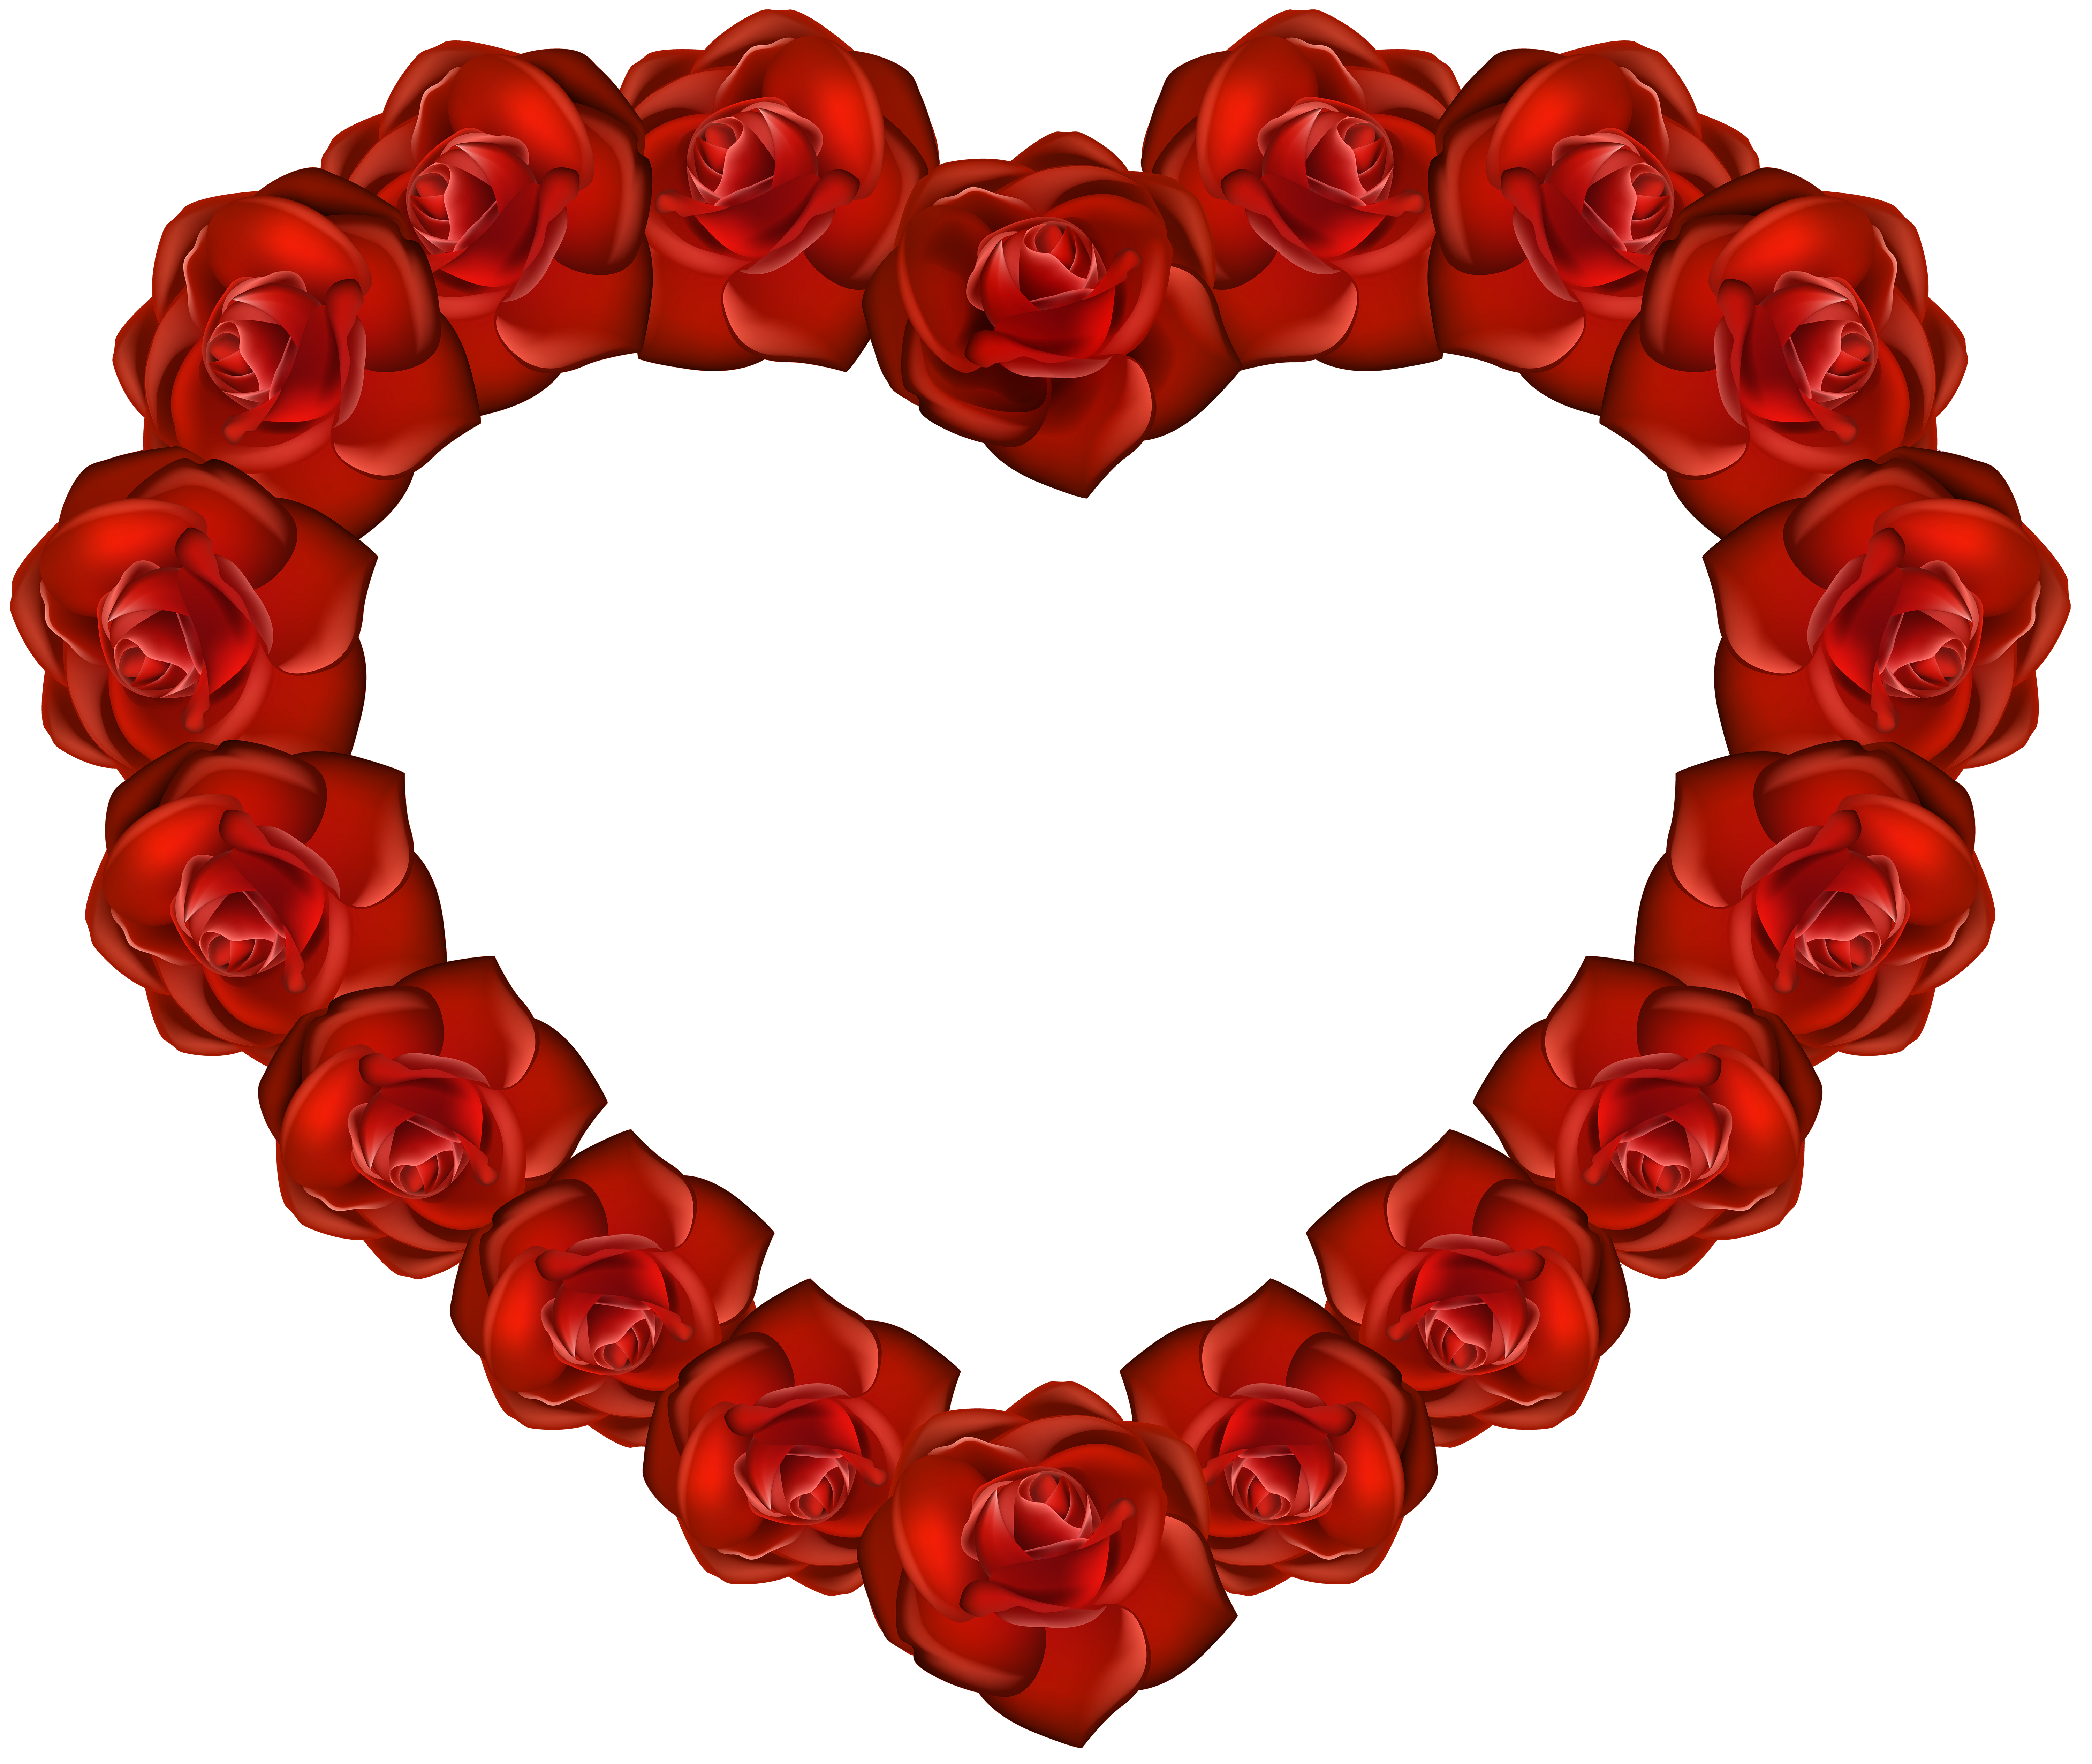 Free Clipart Hearts And Flowers at GetDrawings.com | Free for ...